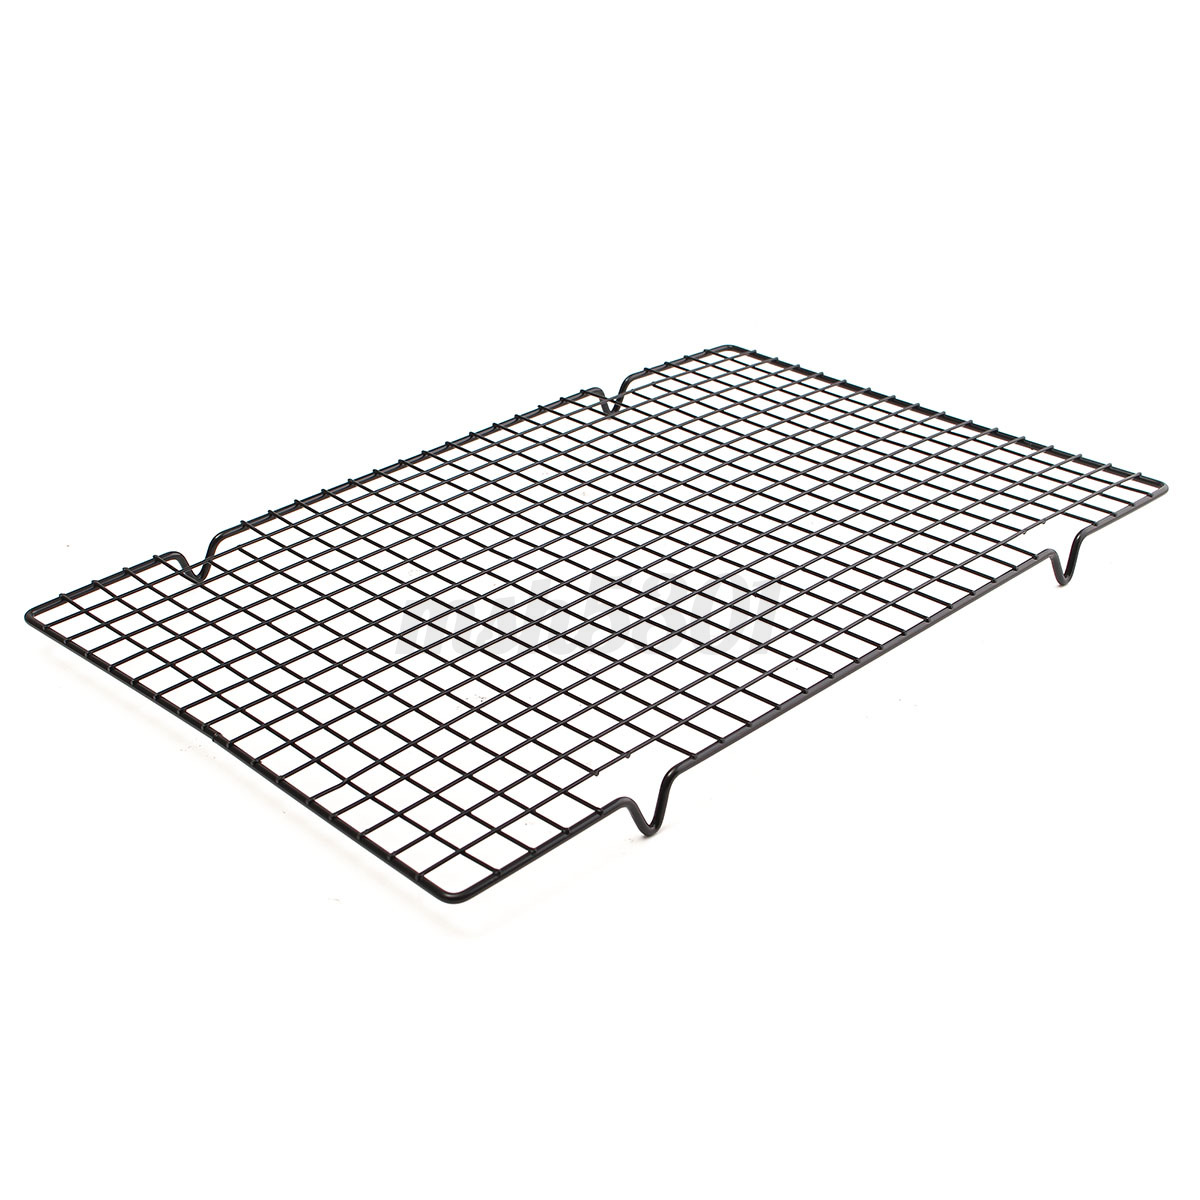 nonstick cooling rack mesh grid baking cookie biscuit cake drying stand wire pan ebay. Black Bedroom Furniture Sets. Home Design Ideas